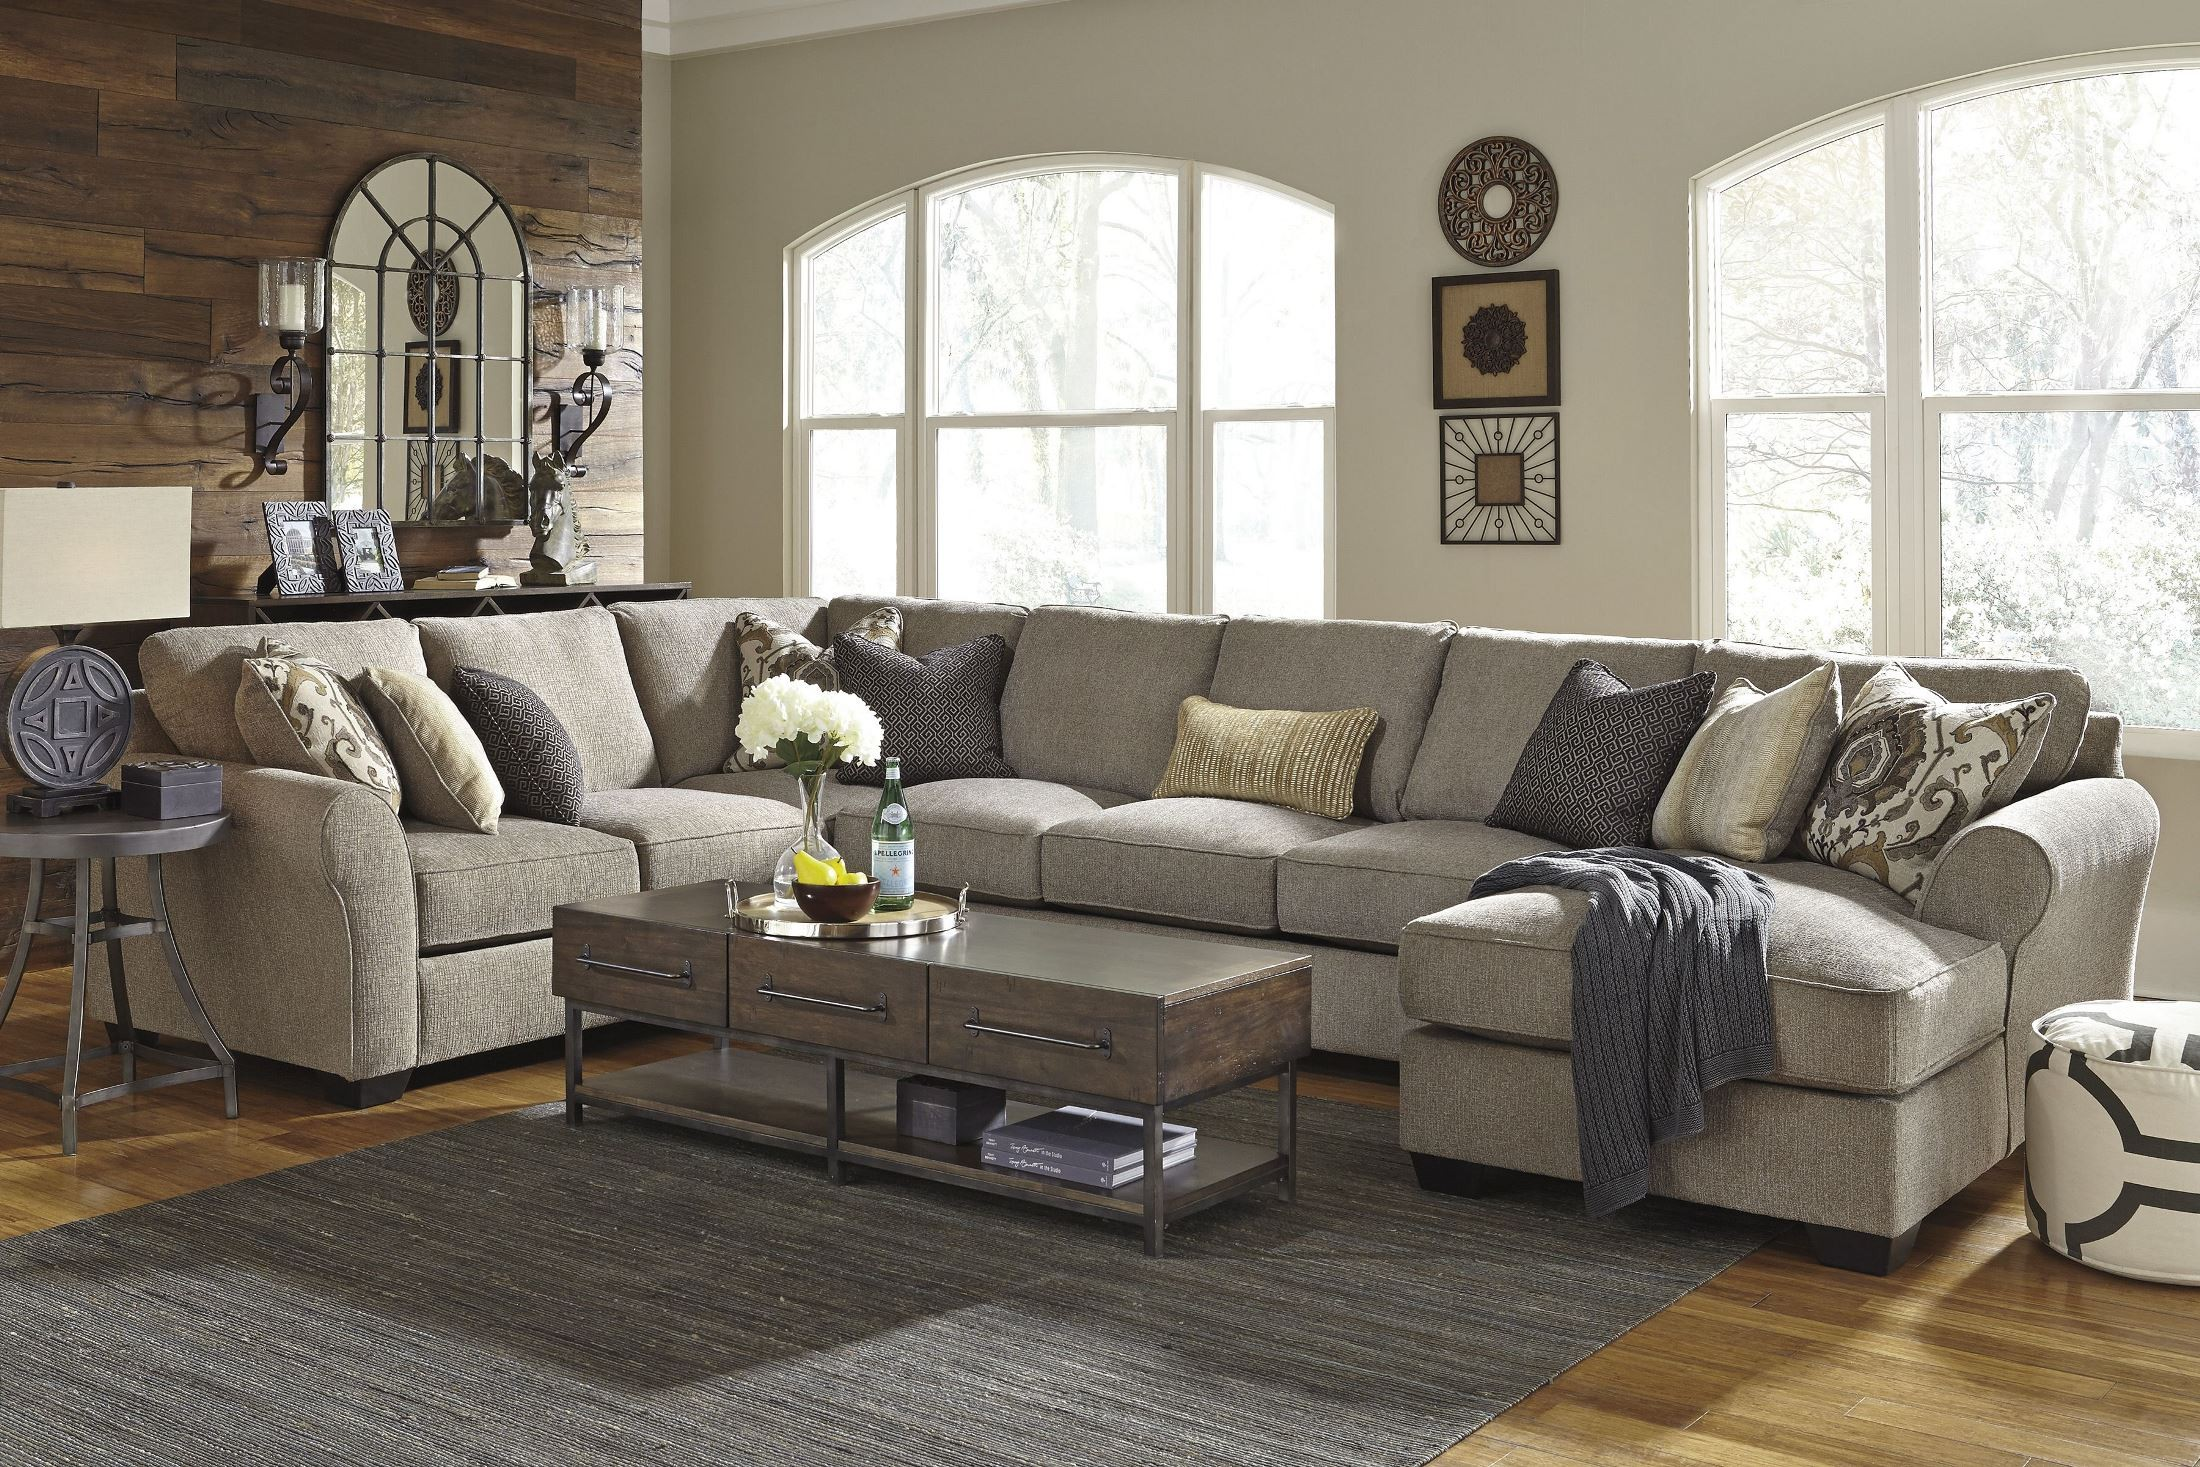 Pantomine Driftwood Raf Large Chaise Sectional 3910216